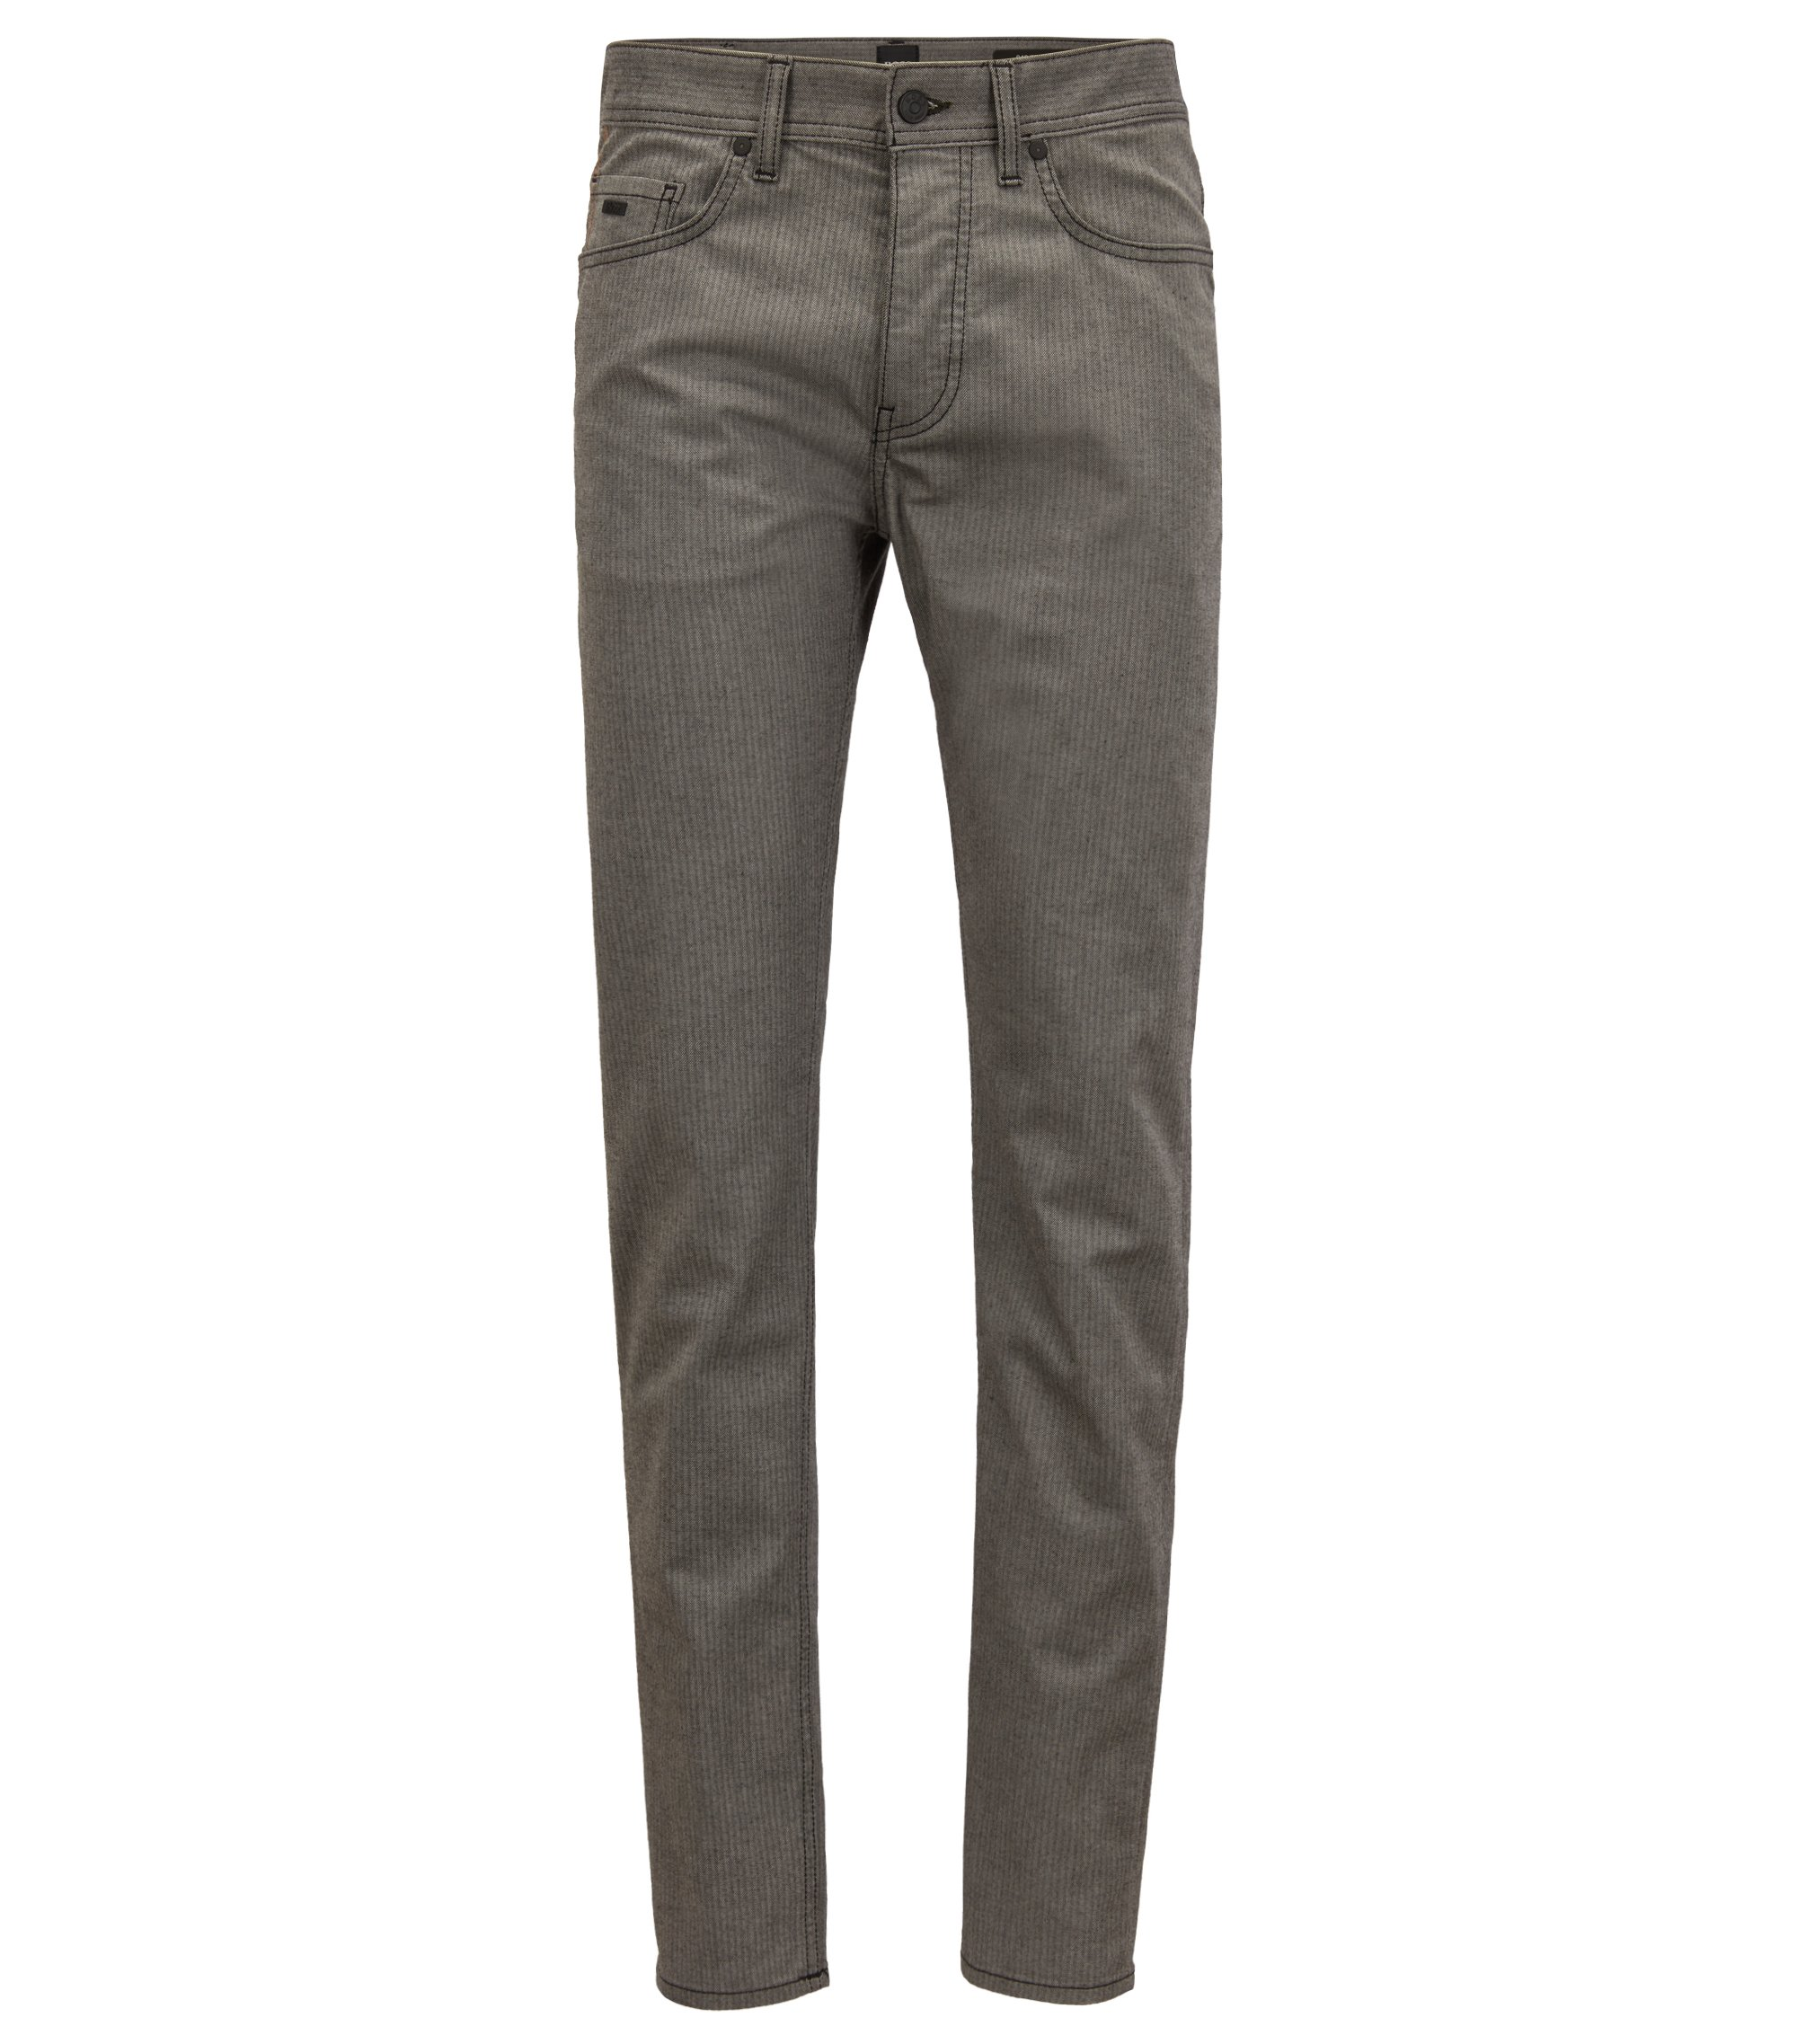 Tapered-fit jeans in comfort-stretch herringbone denim, Light Grey